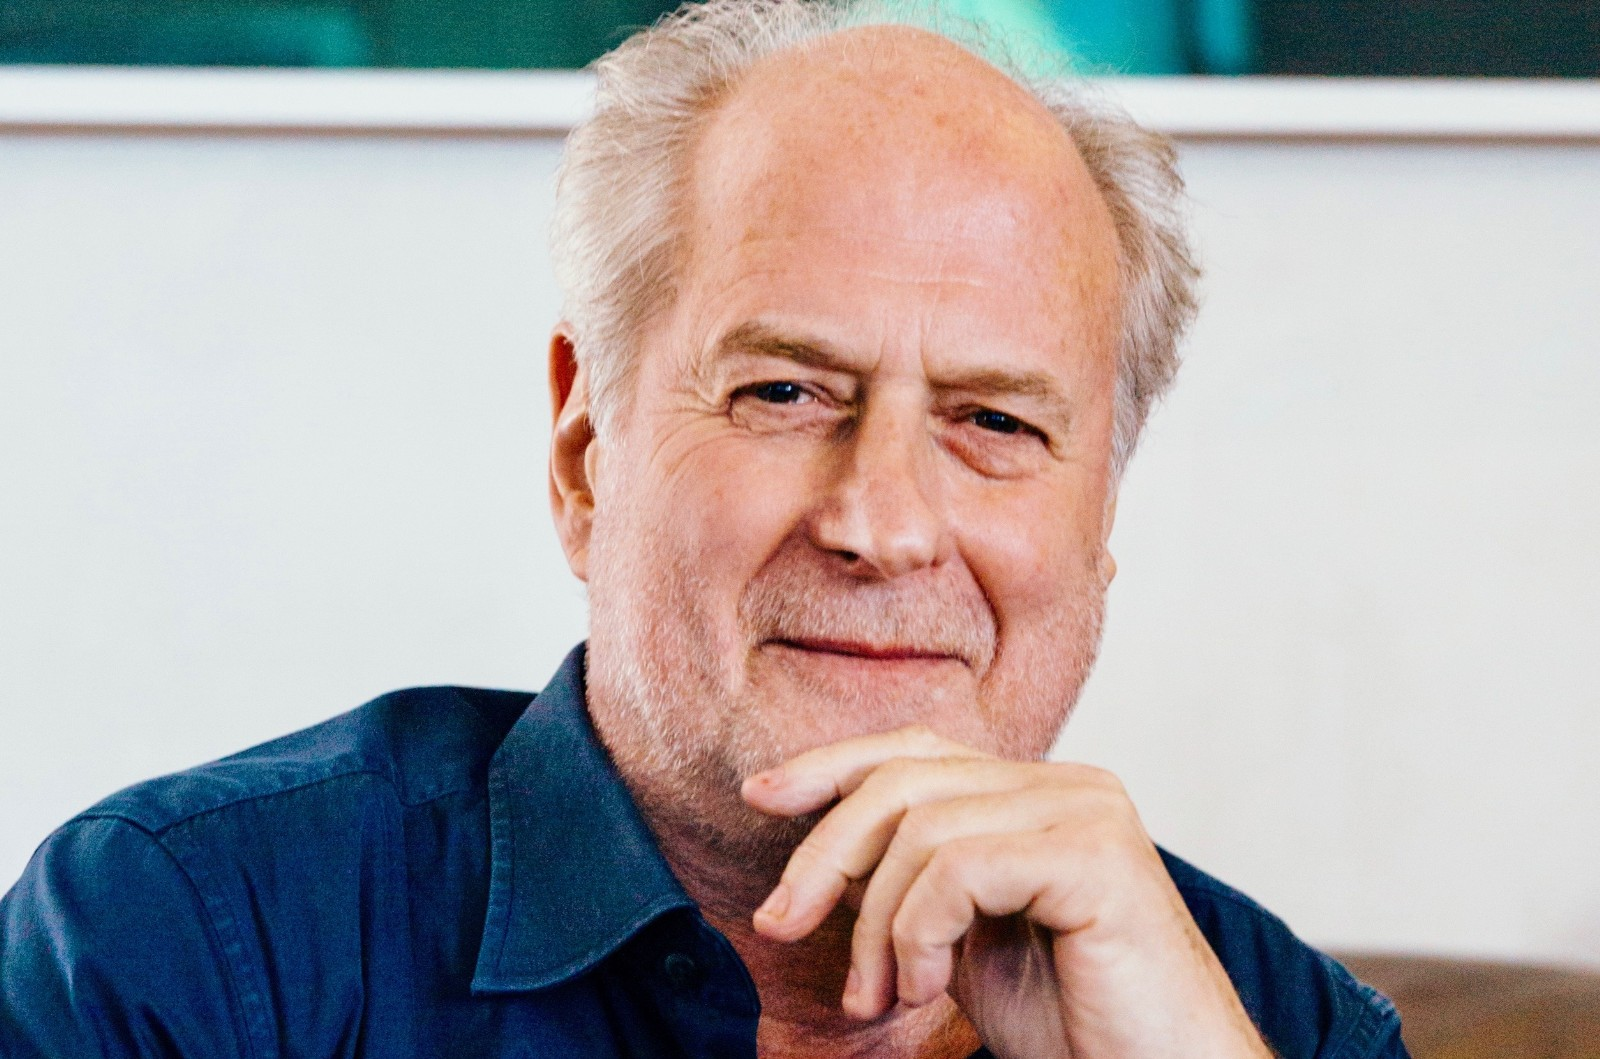 michael gudinski - photo #10